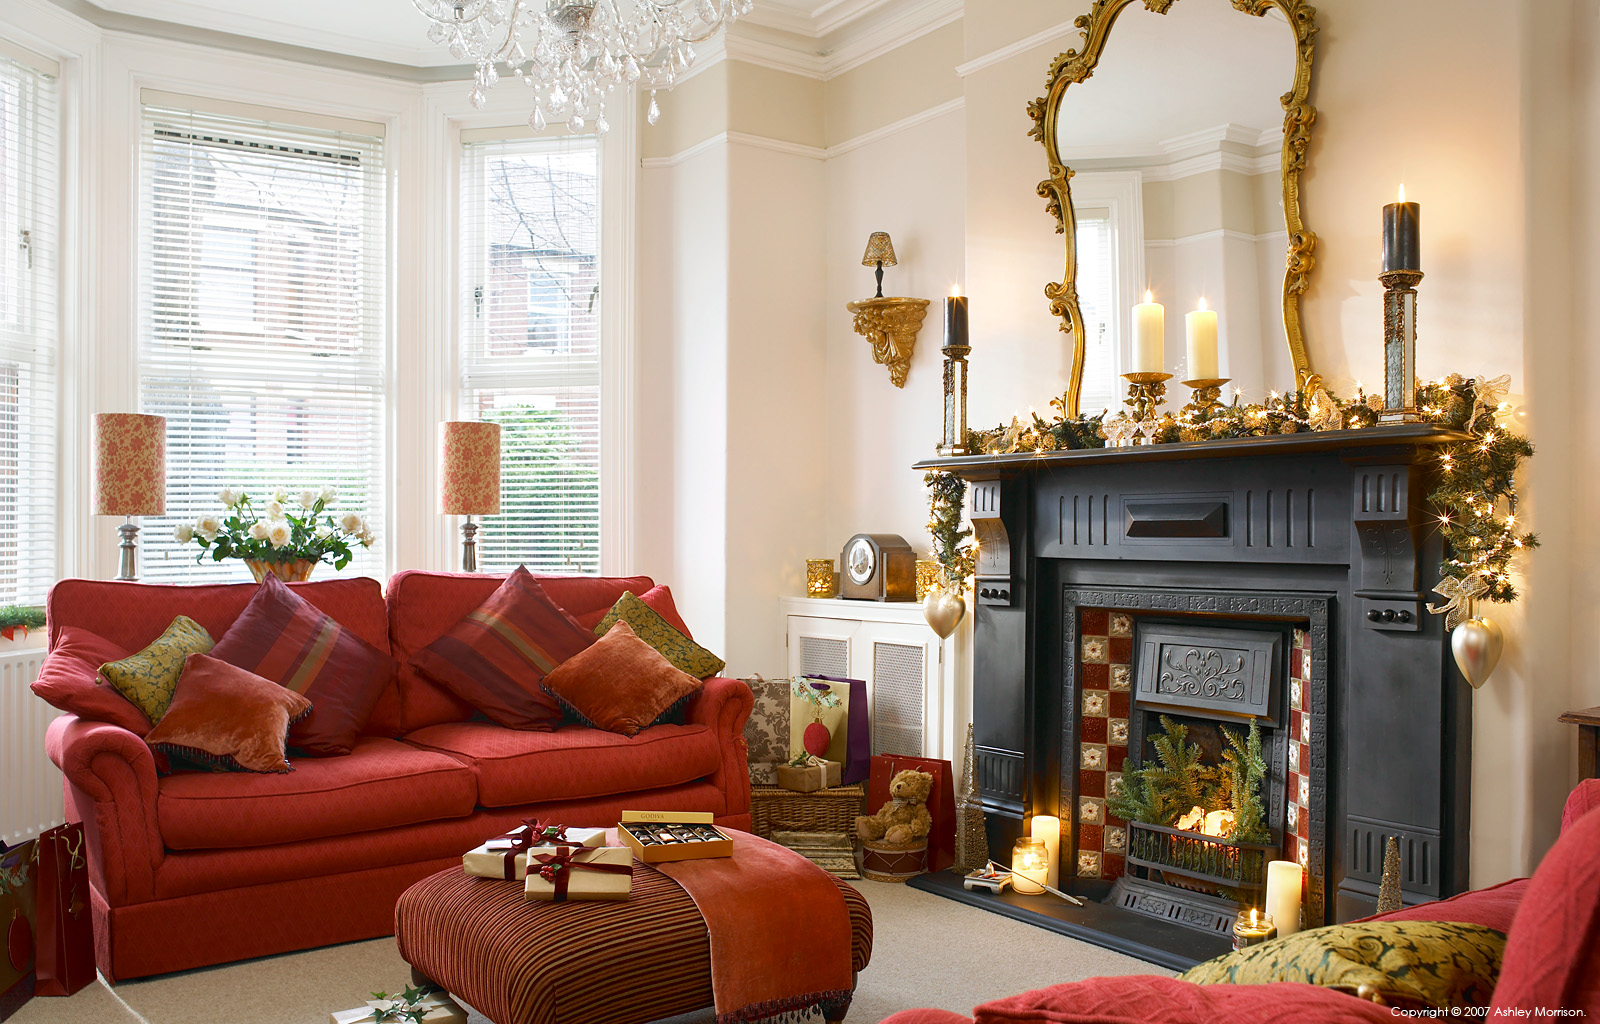 The sitting room in Michelle Jackson's townhouse in Belfast at Christmas.